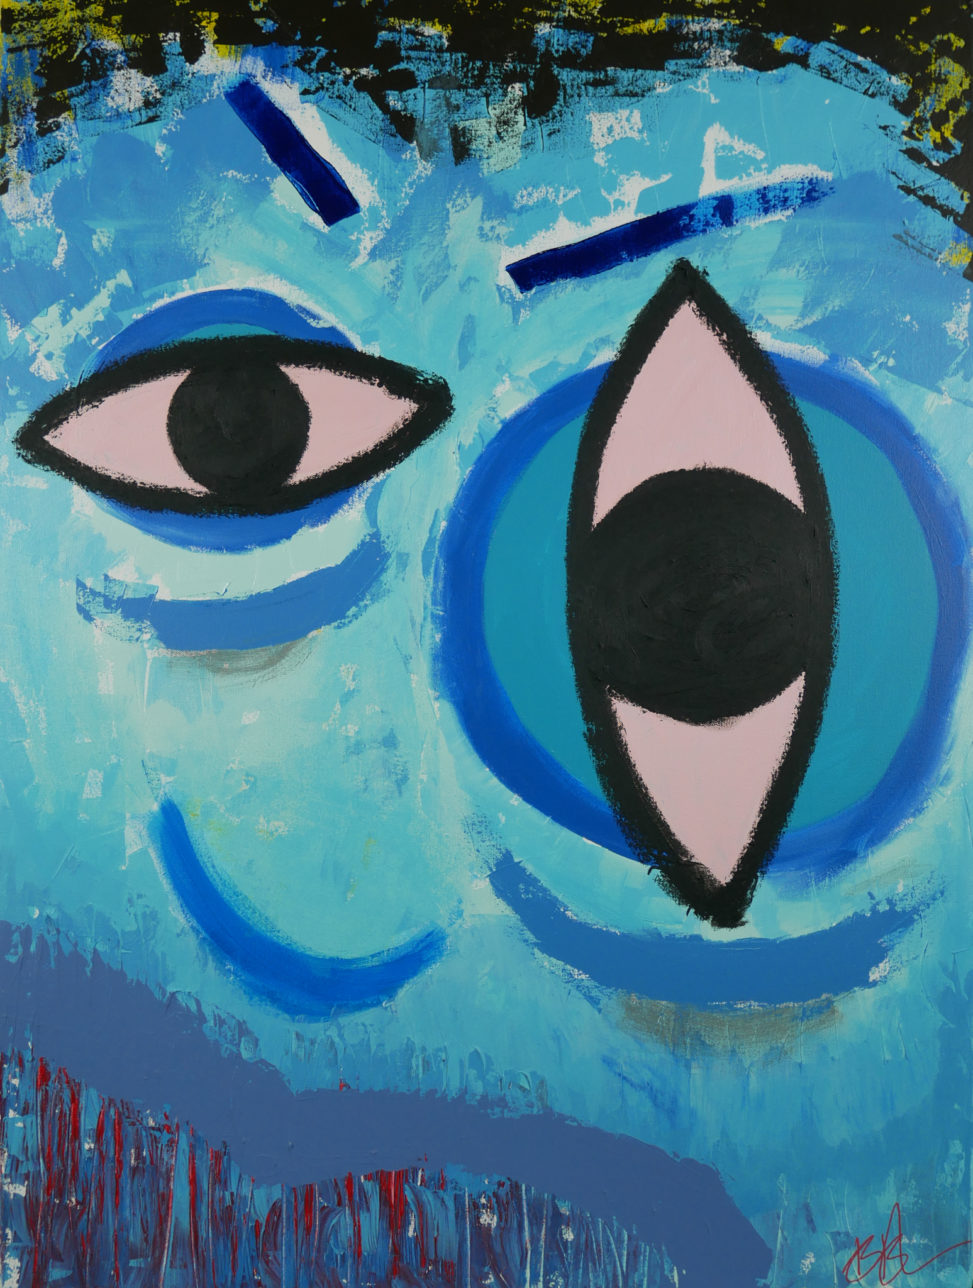 abstract painting of a blue face